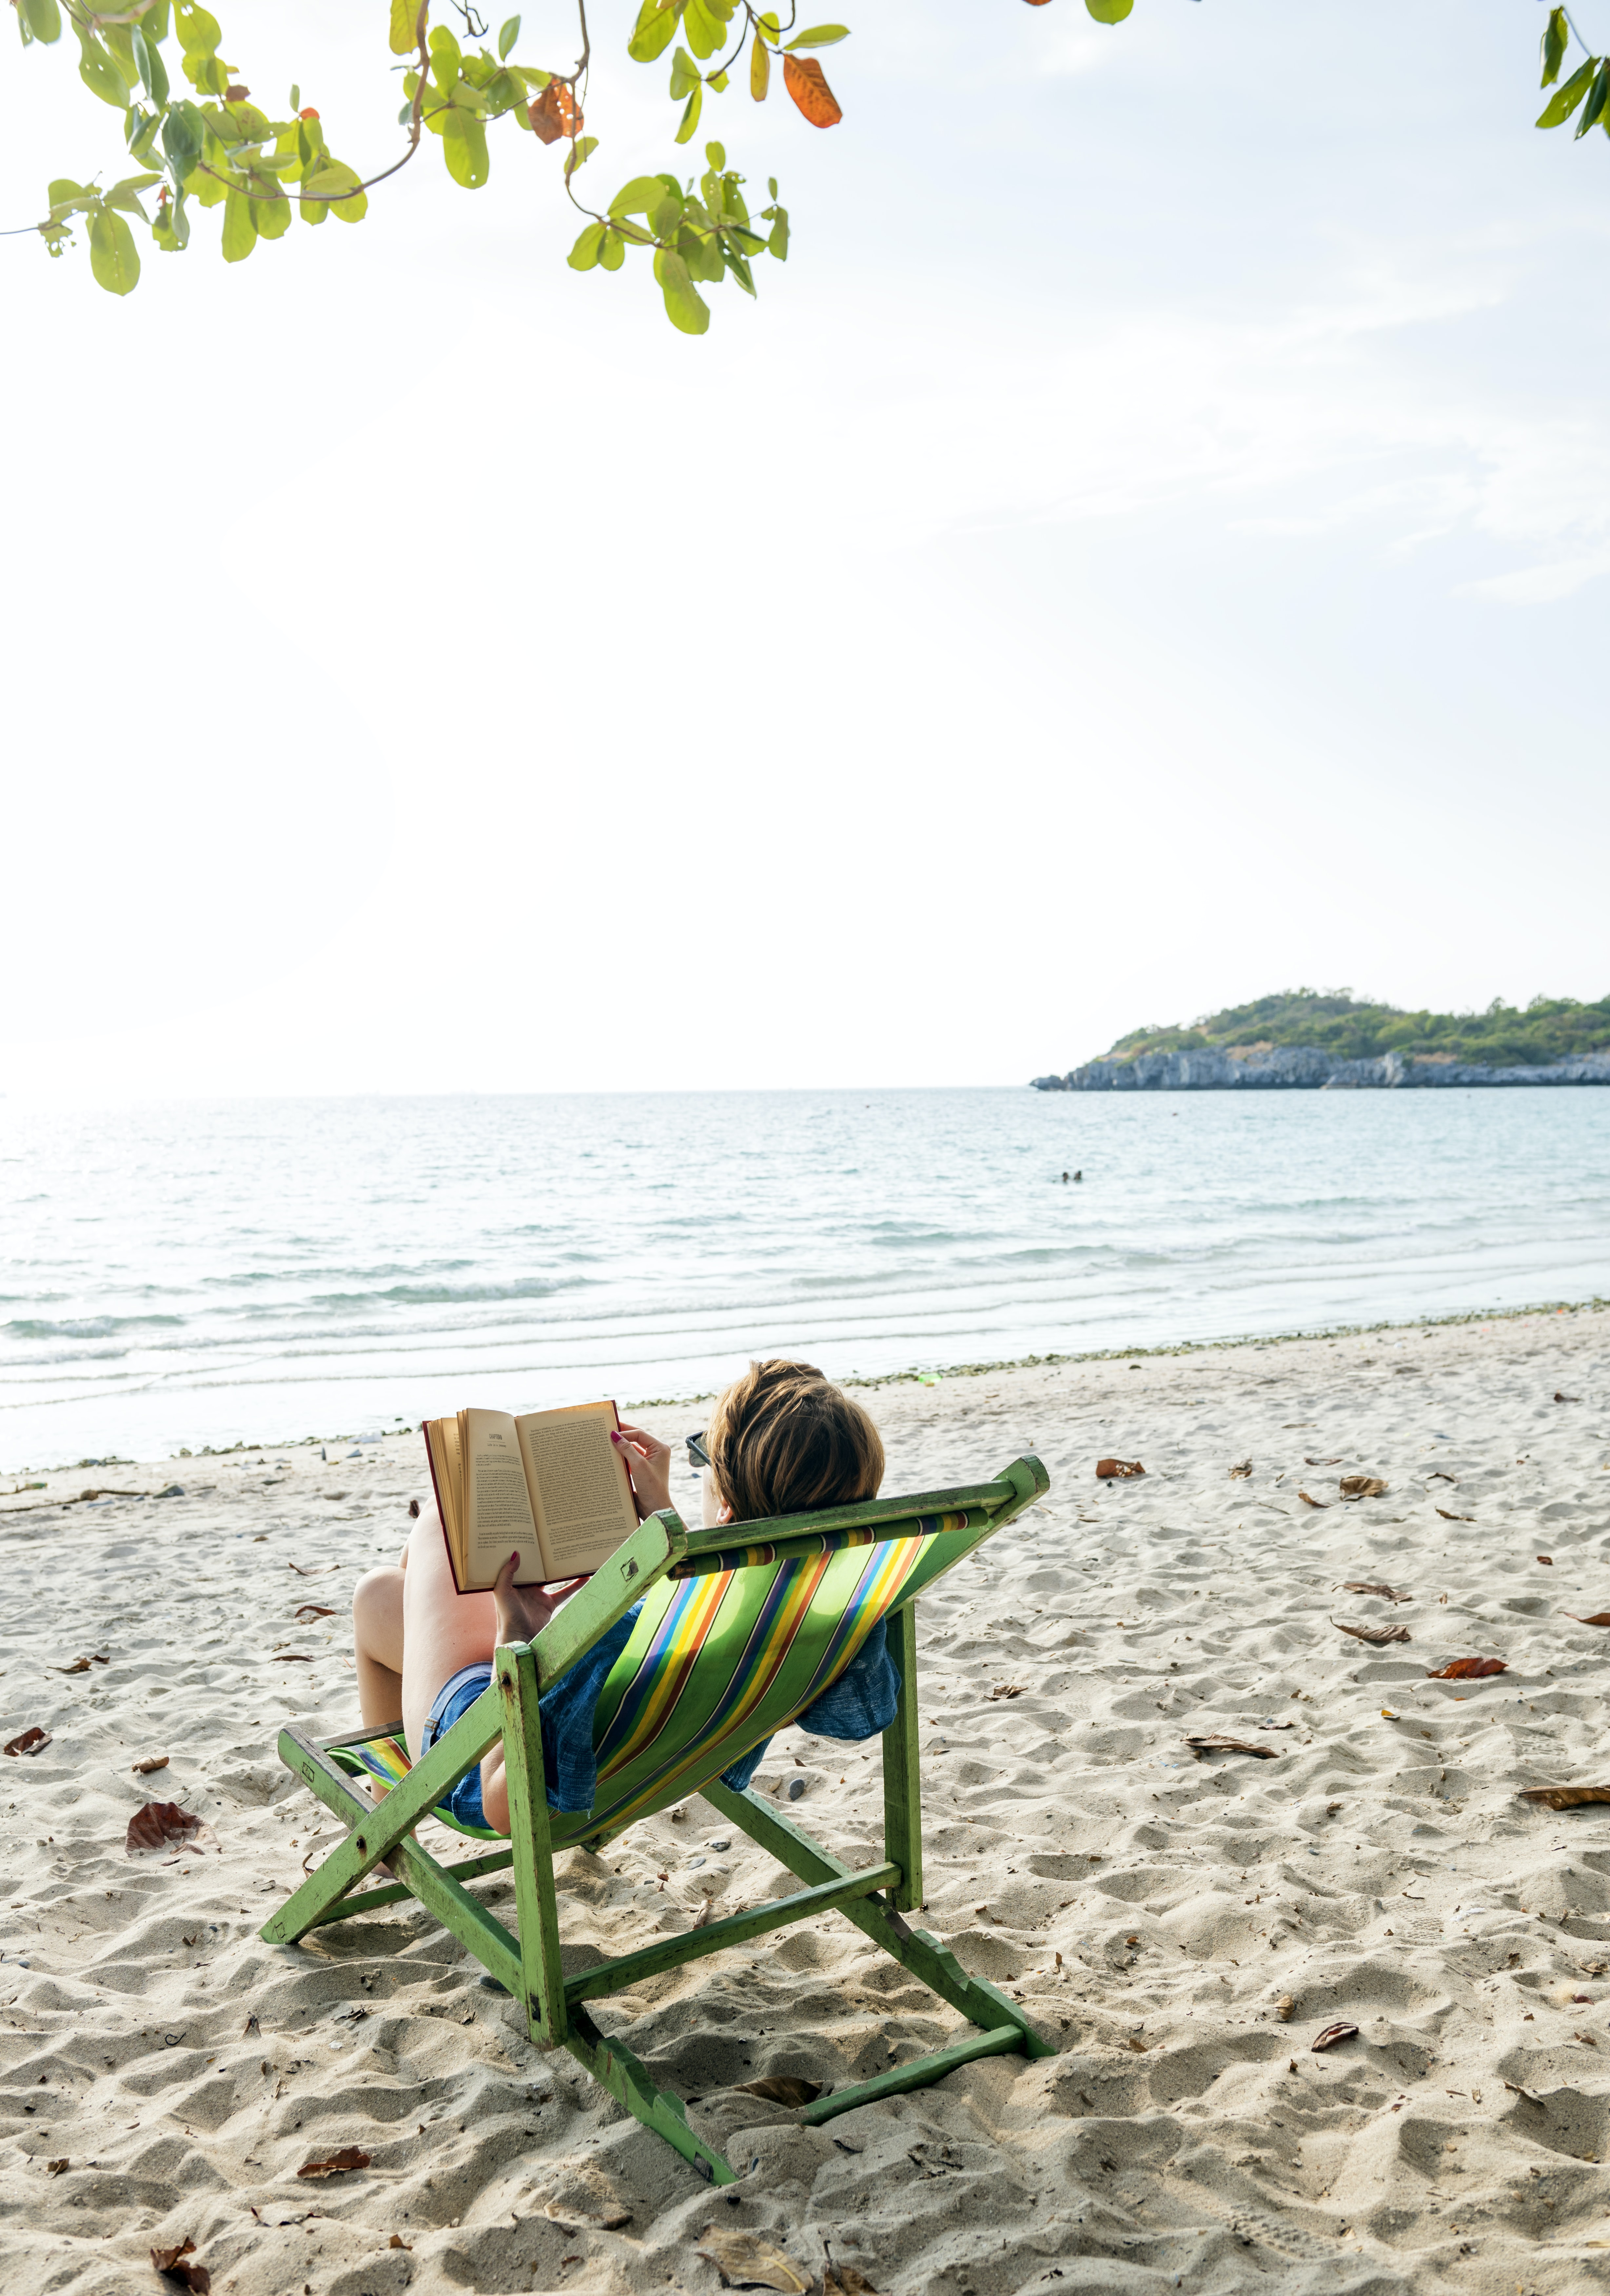 person sitting on lounge chair and reading book on beach